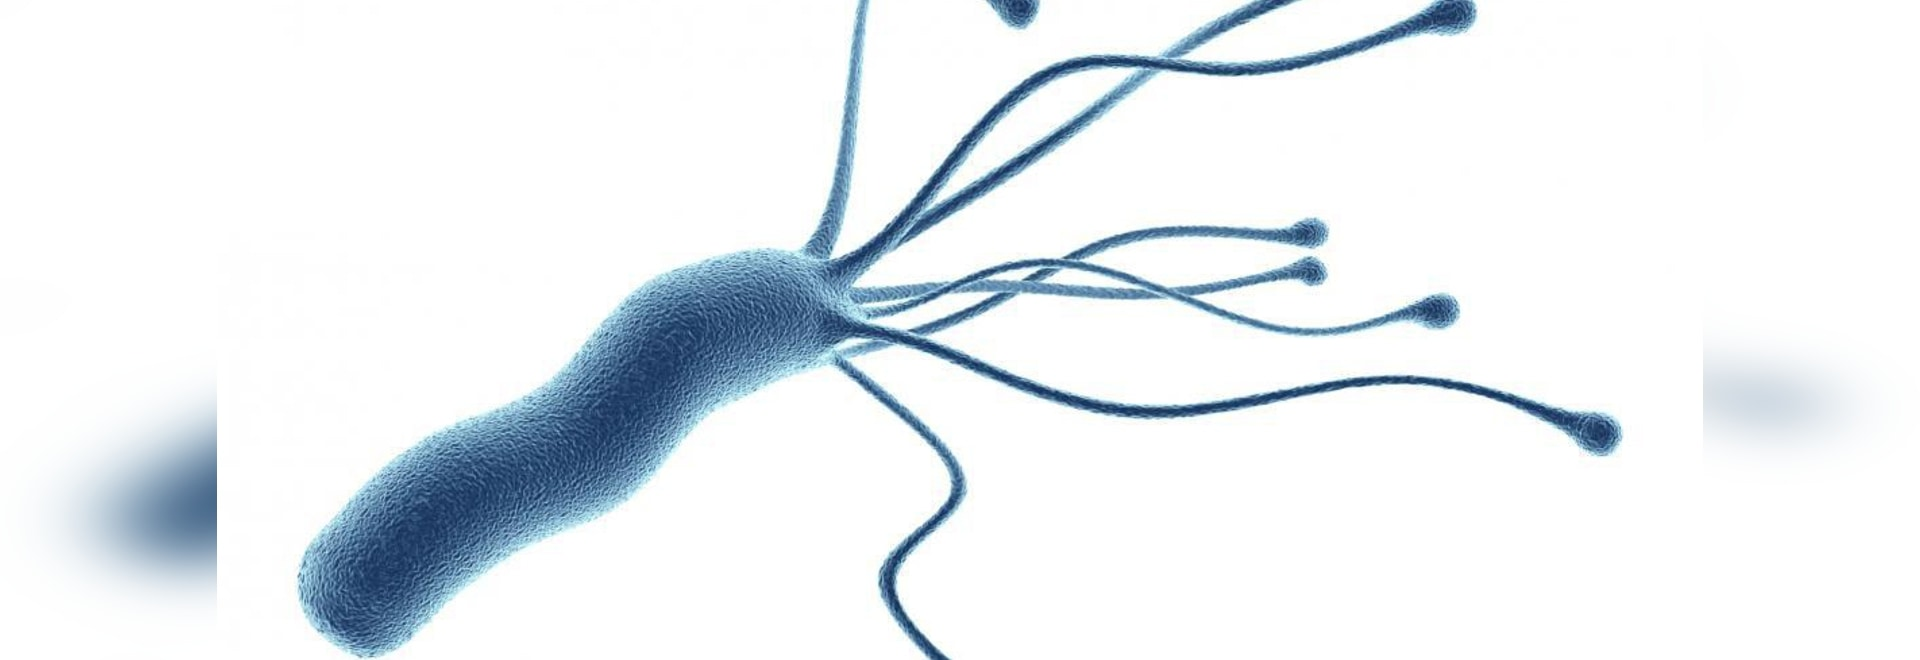 How do H. pylori (pictured above) colonize humans so successfully?